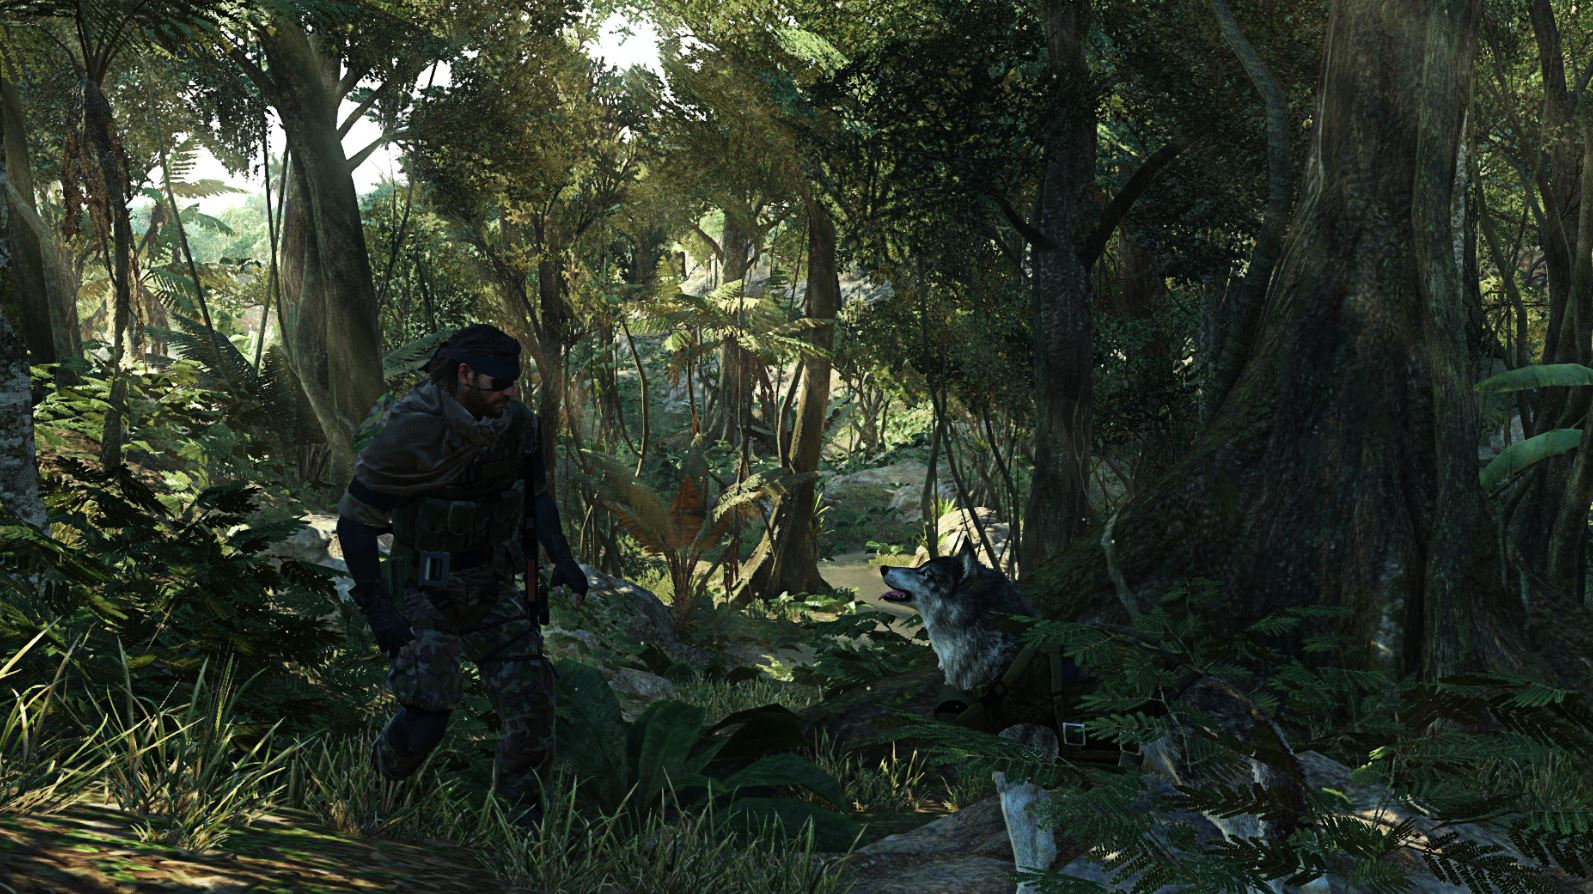 Metal Gear Solid V has fantastic Landscapes